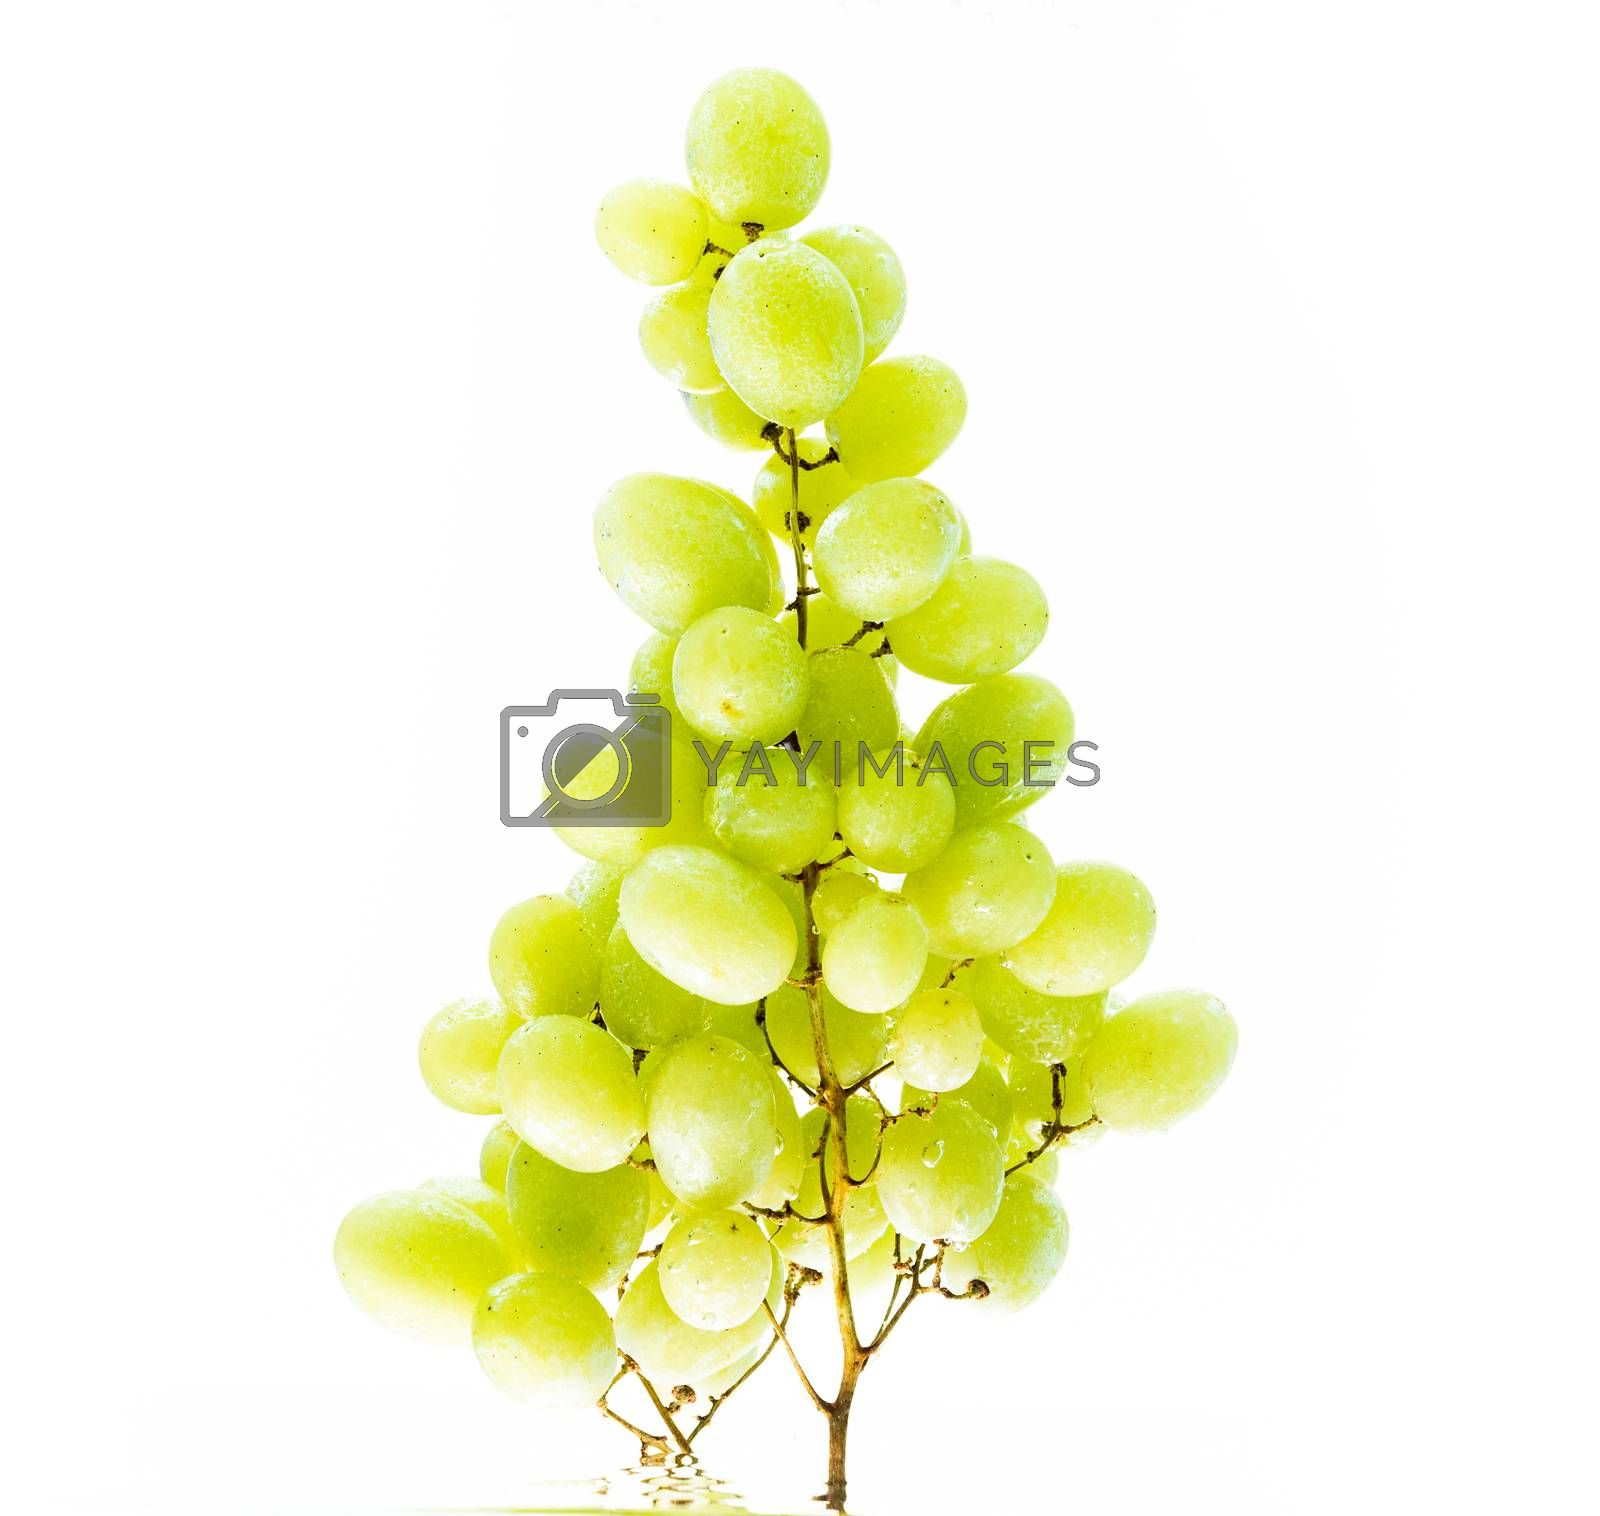 Fresh green grapes in water against white background. Health concept.